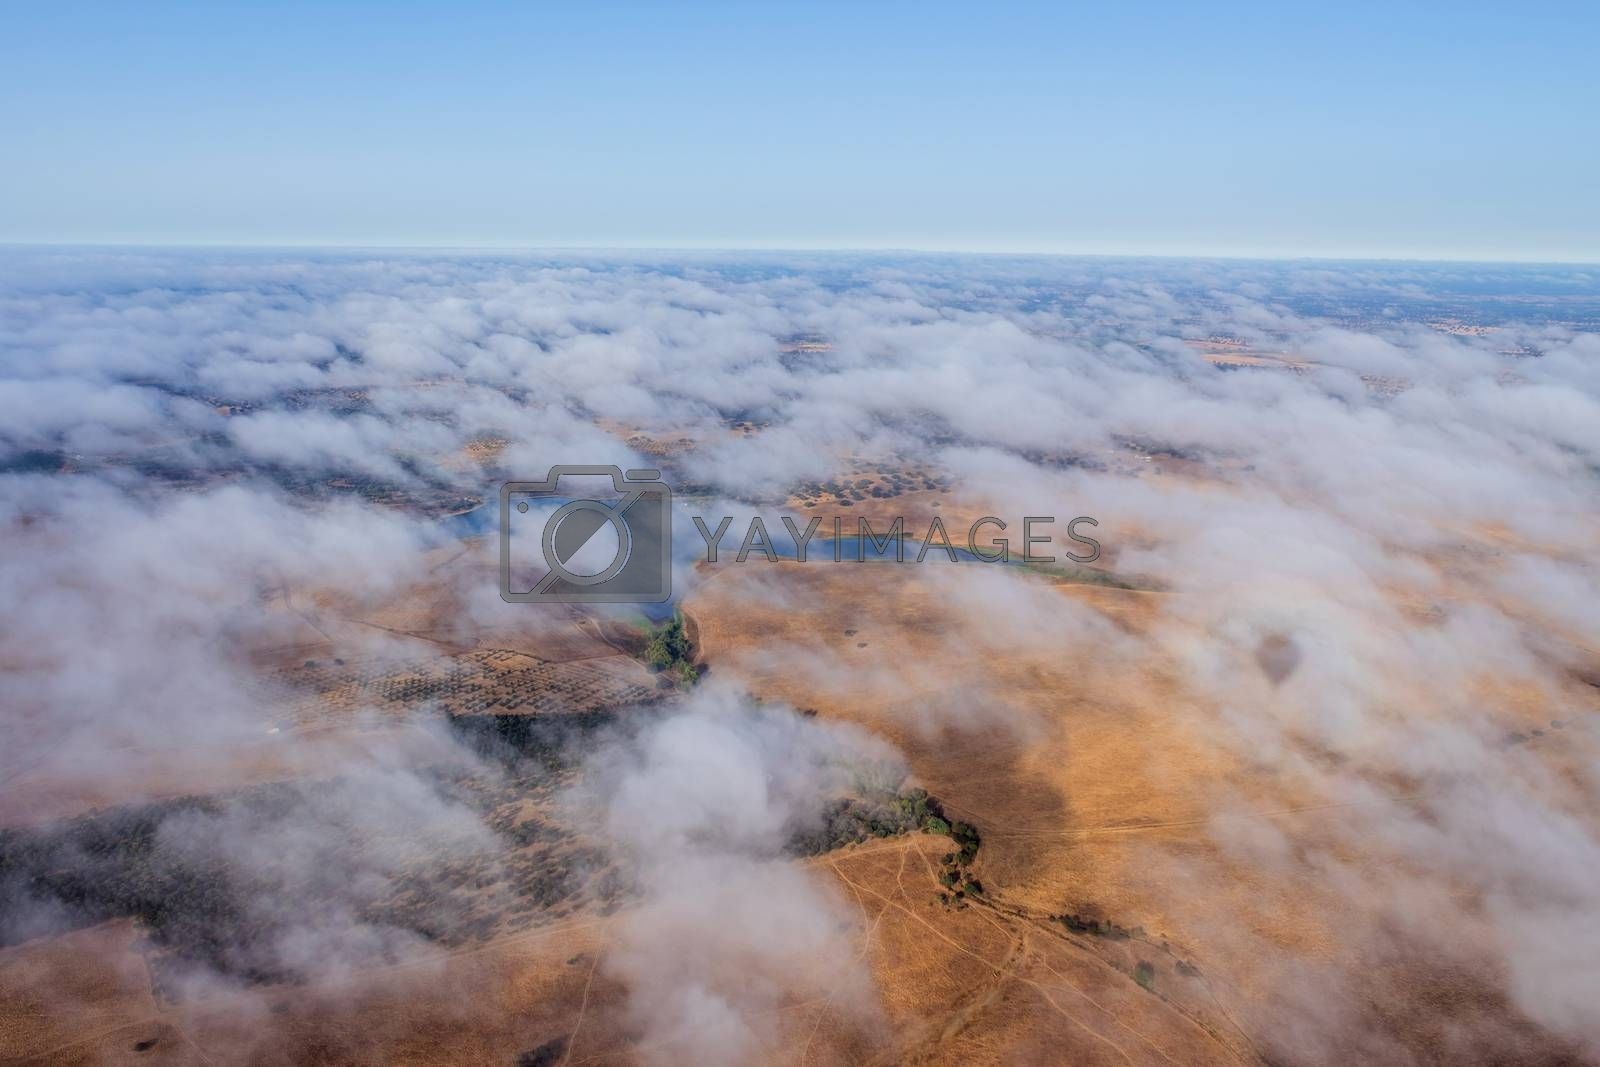 Hot air balloon in the Alentejo region, above the clouds and the fields. Portugal.